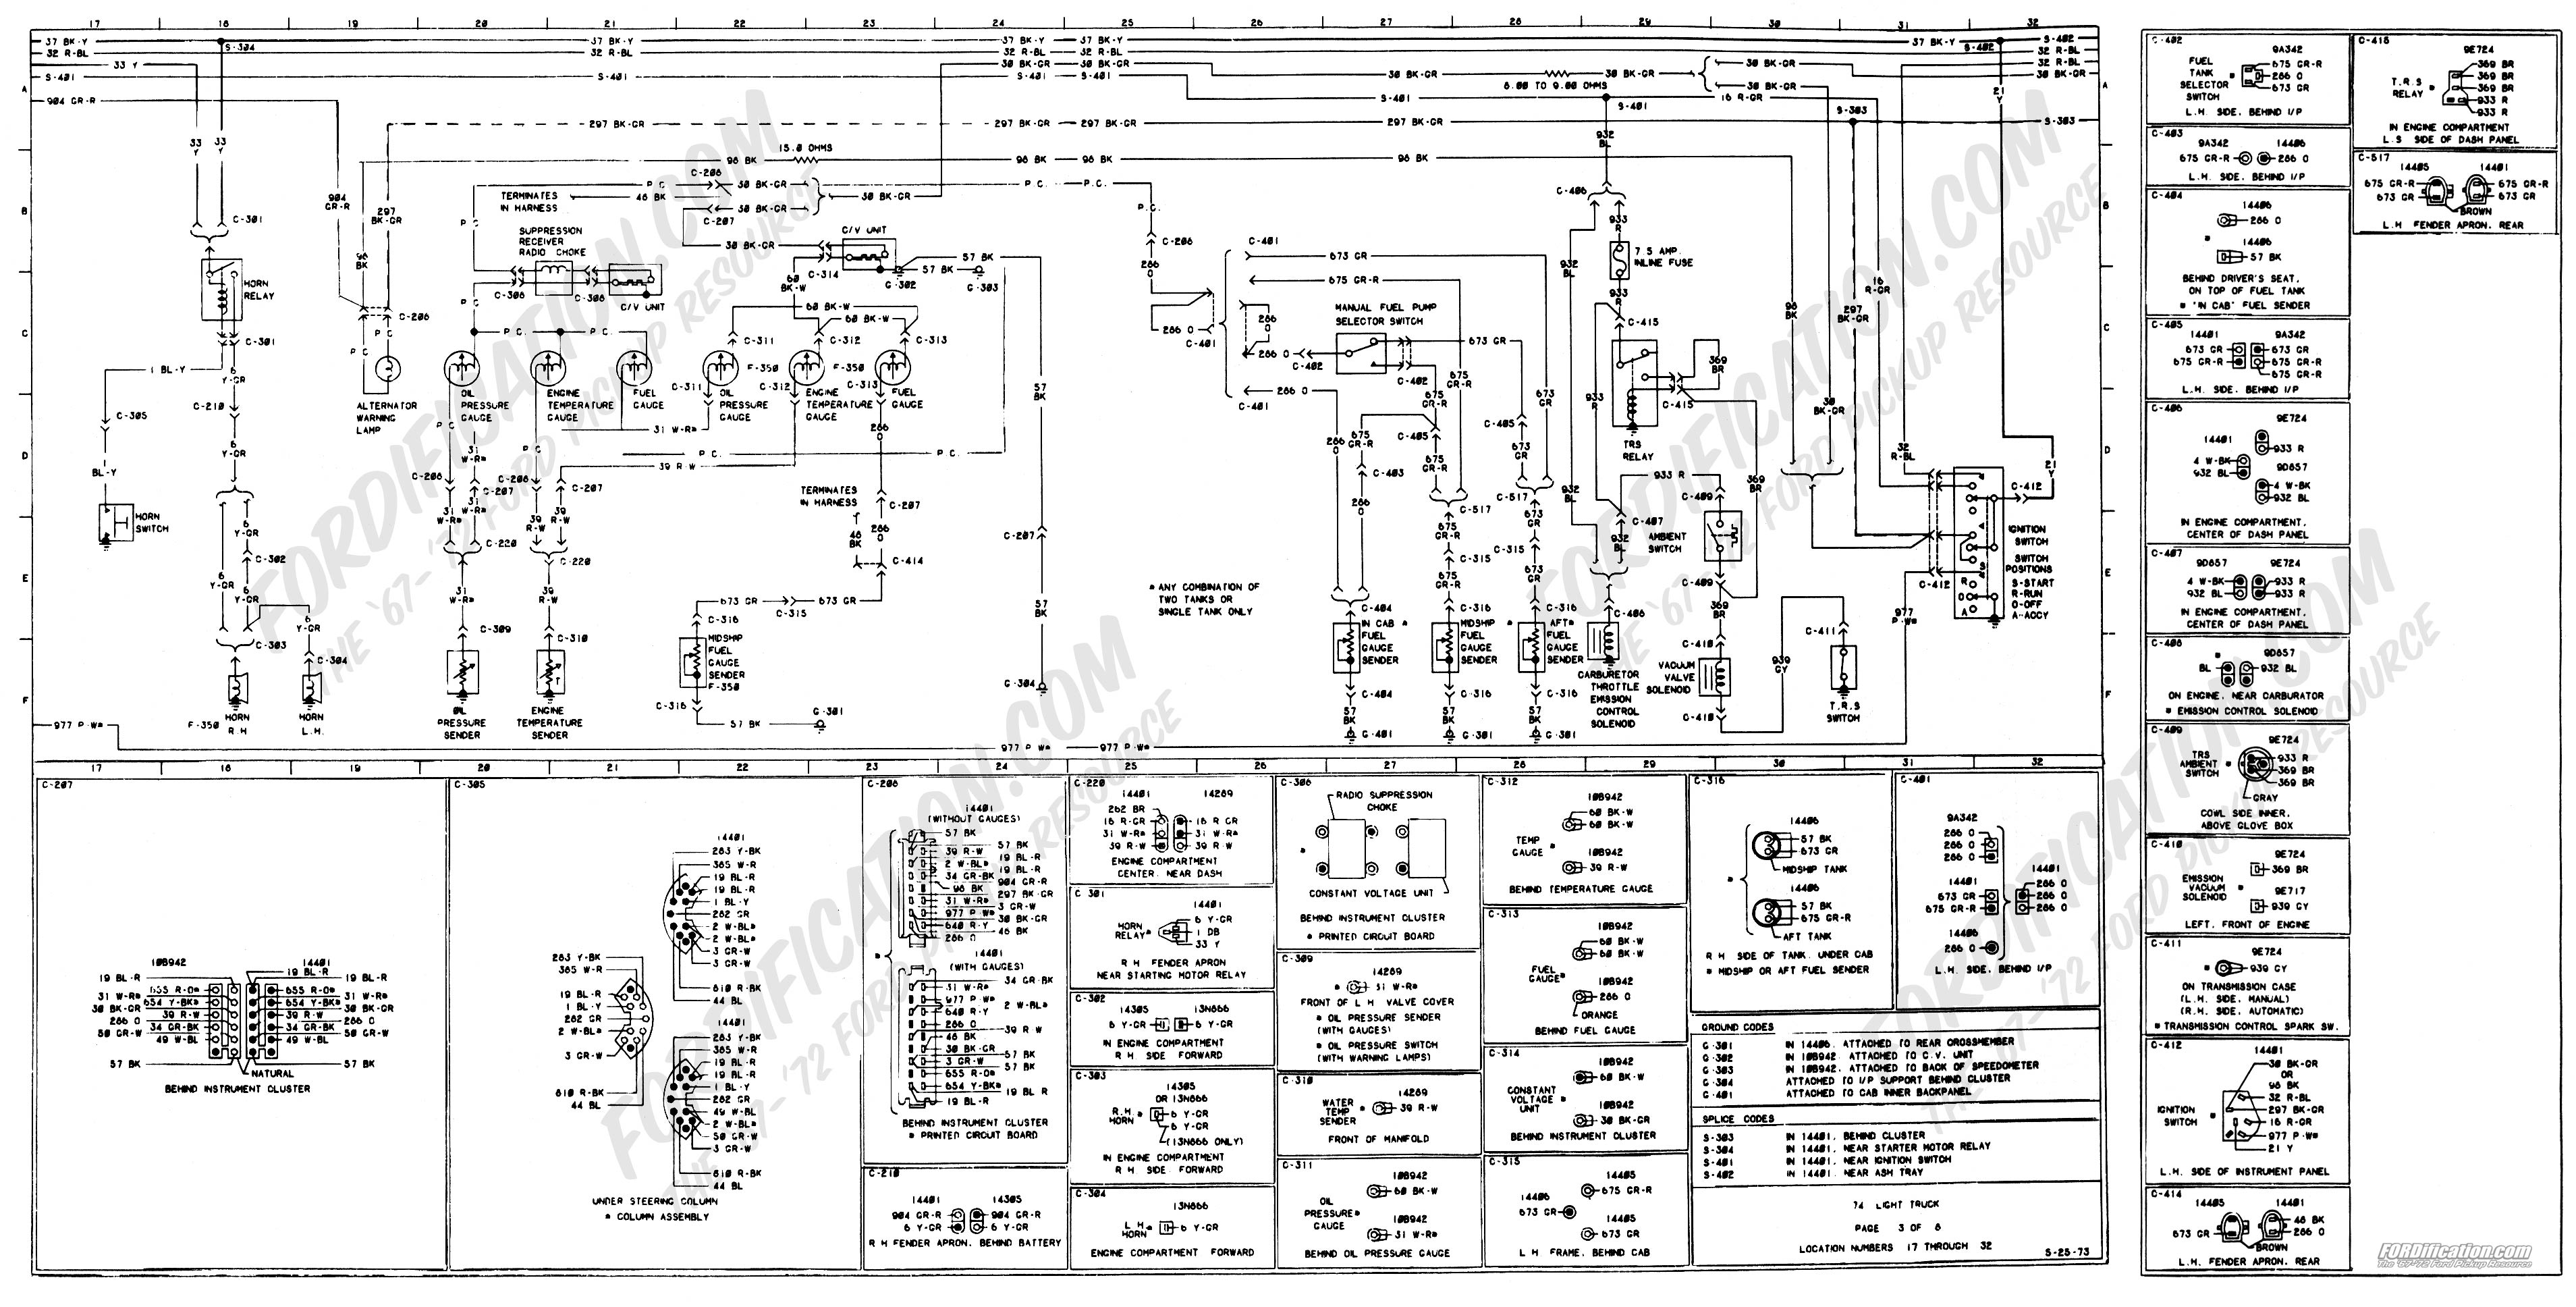 wiring_74master_3of8 1973 1979 ford truck wiring diagrams & schematics fordification net truck wiring harness at gsmportal.co